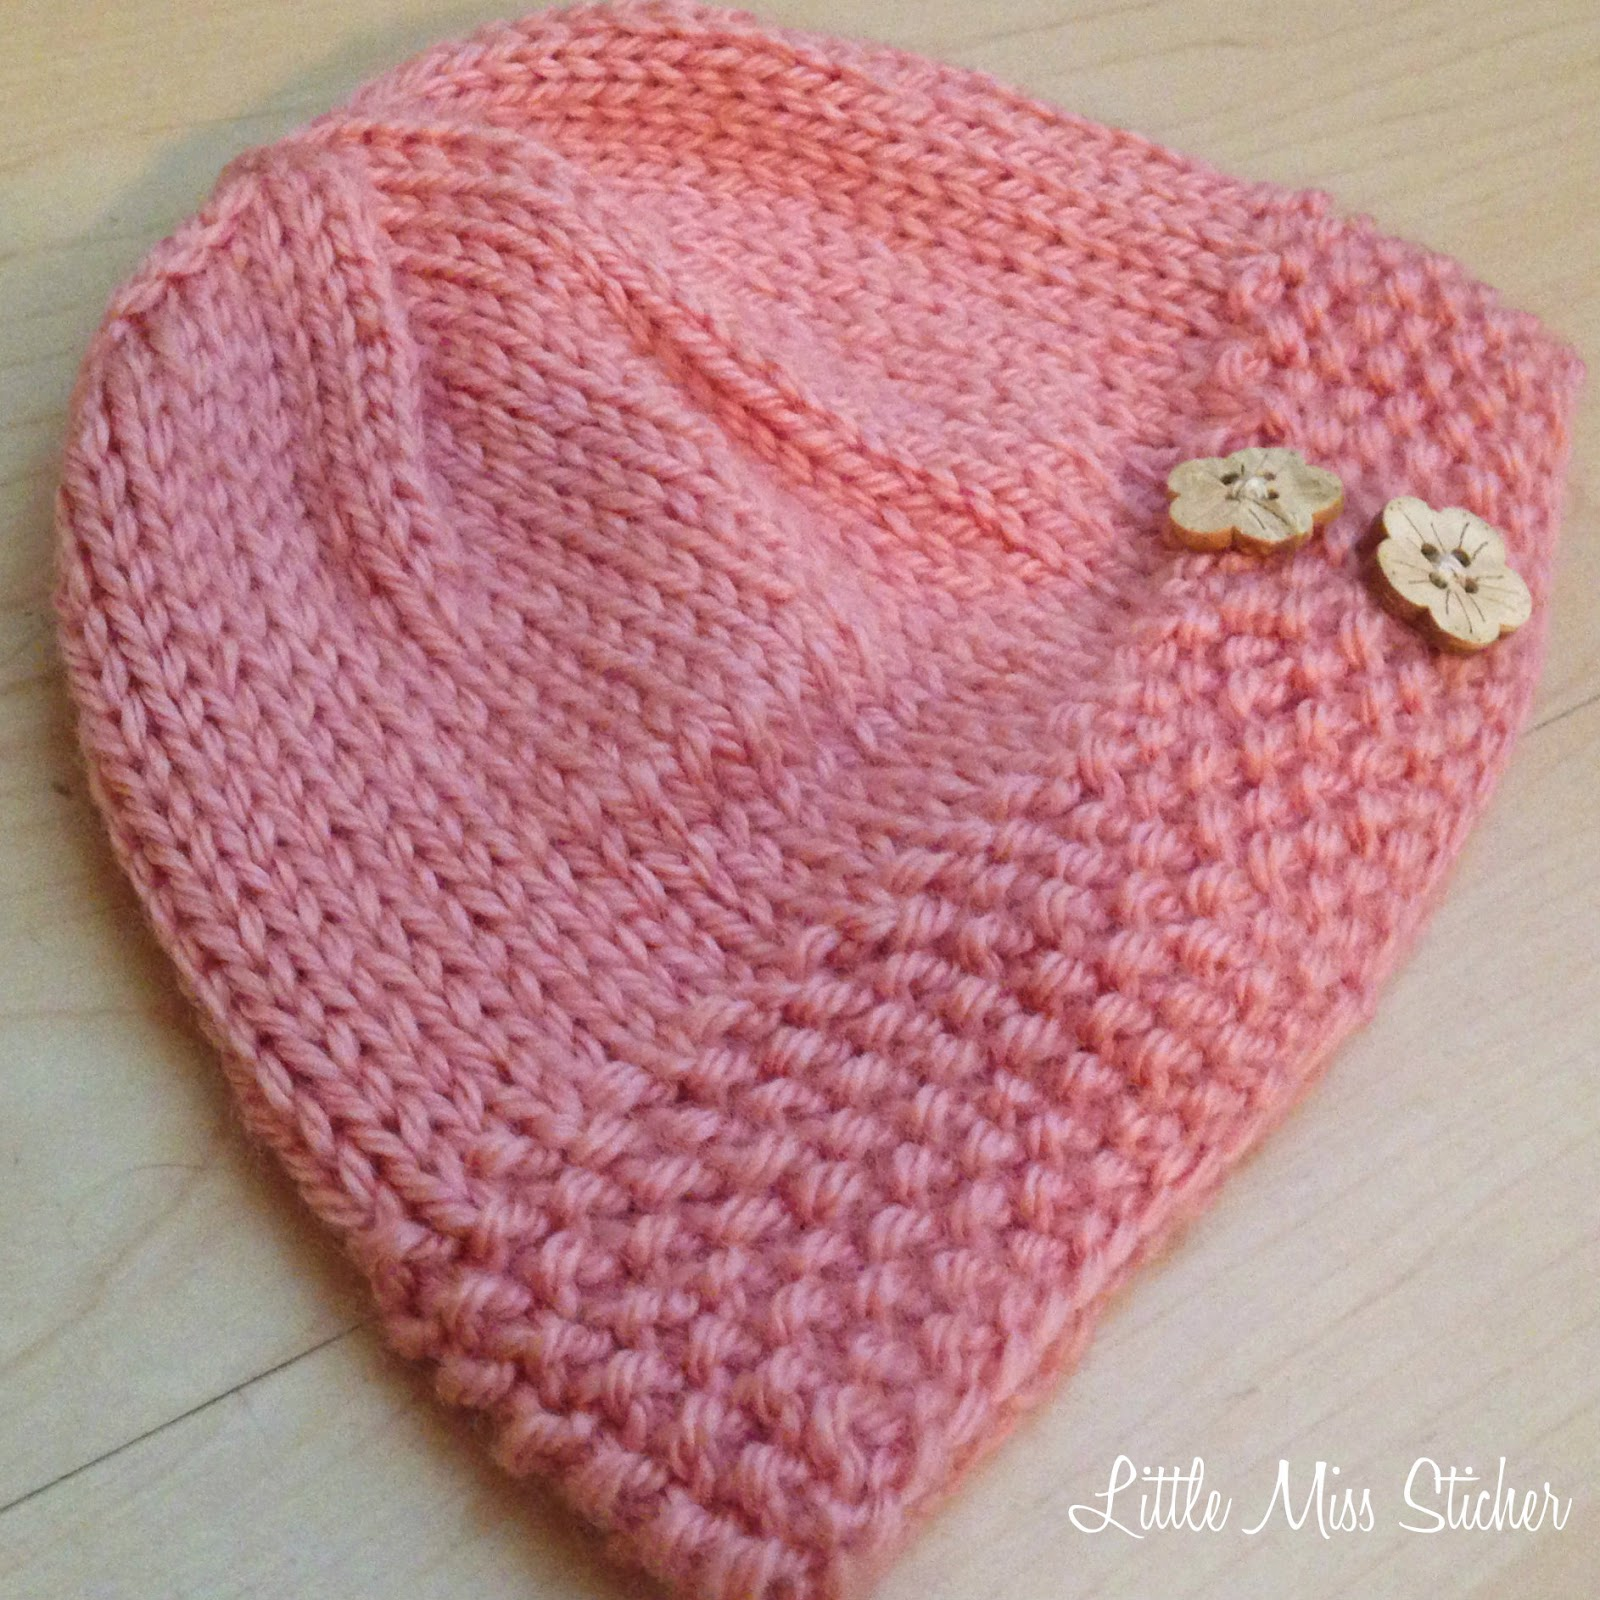 Knitting Patterns Free : Little Miss Stitcher: Bitty Beanie Free Knit Pattern